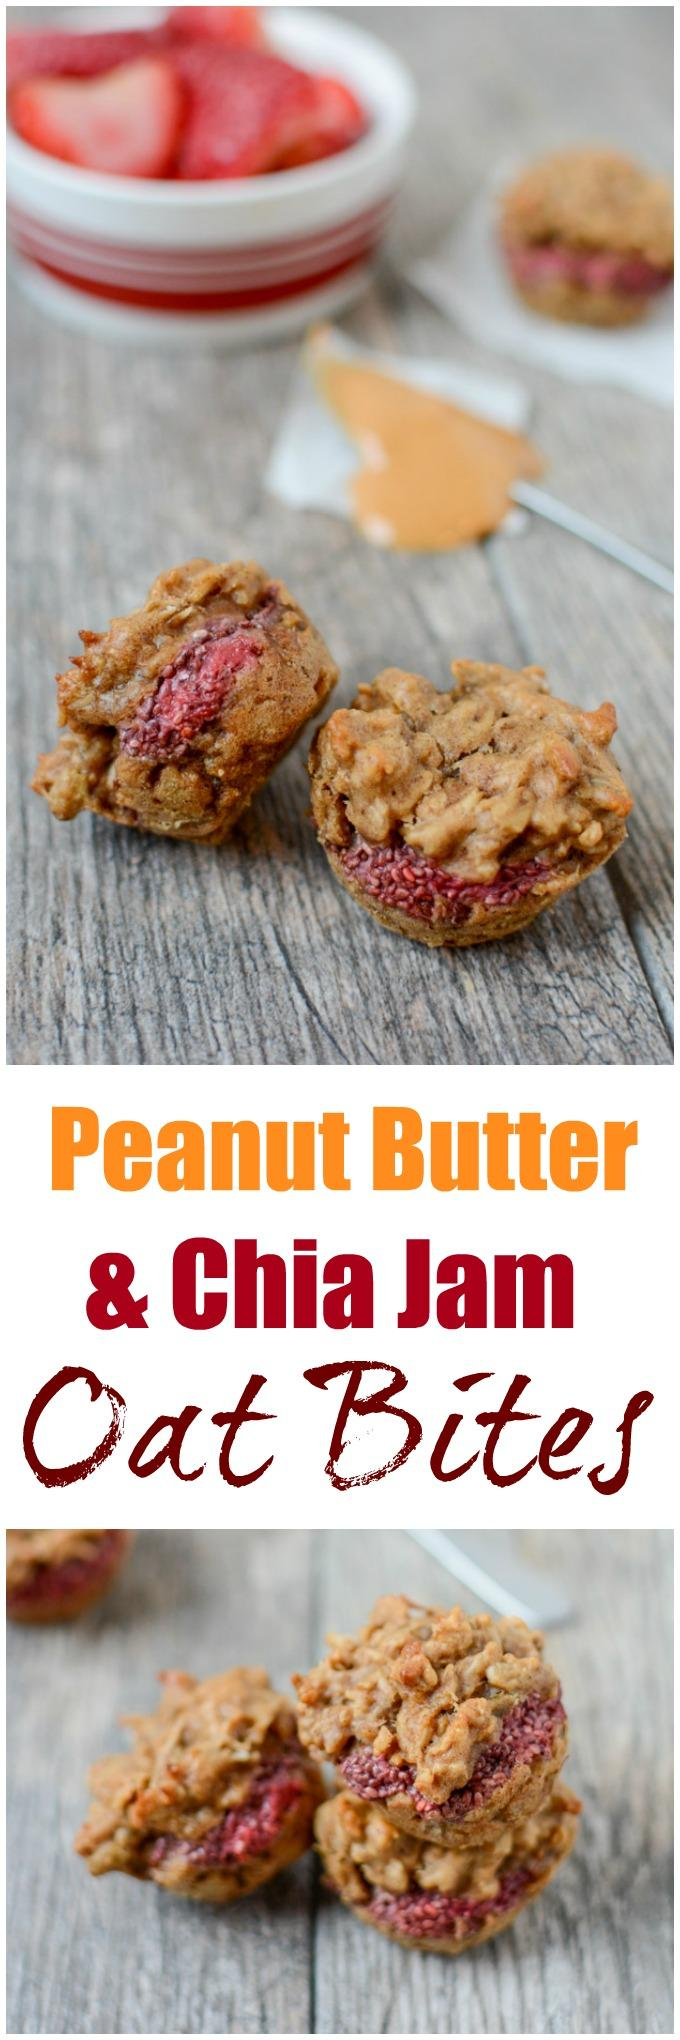 This gluten-free recipe for Peanut Butter and Chia Jam Oat Bites is a fun twist on your favorite childhood sandwich! Perfect for breakfast or a grab-and-go snack.